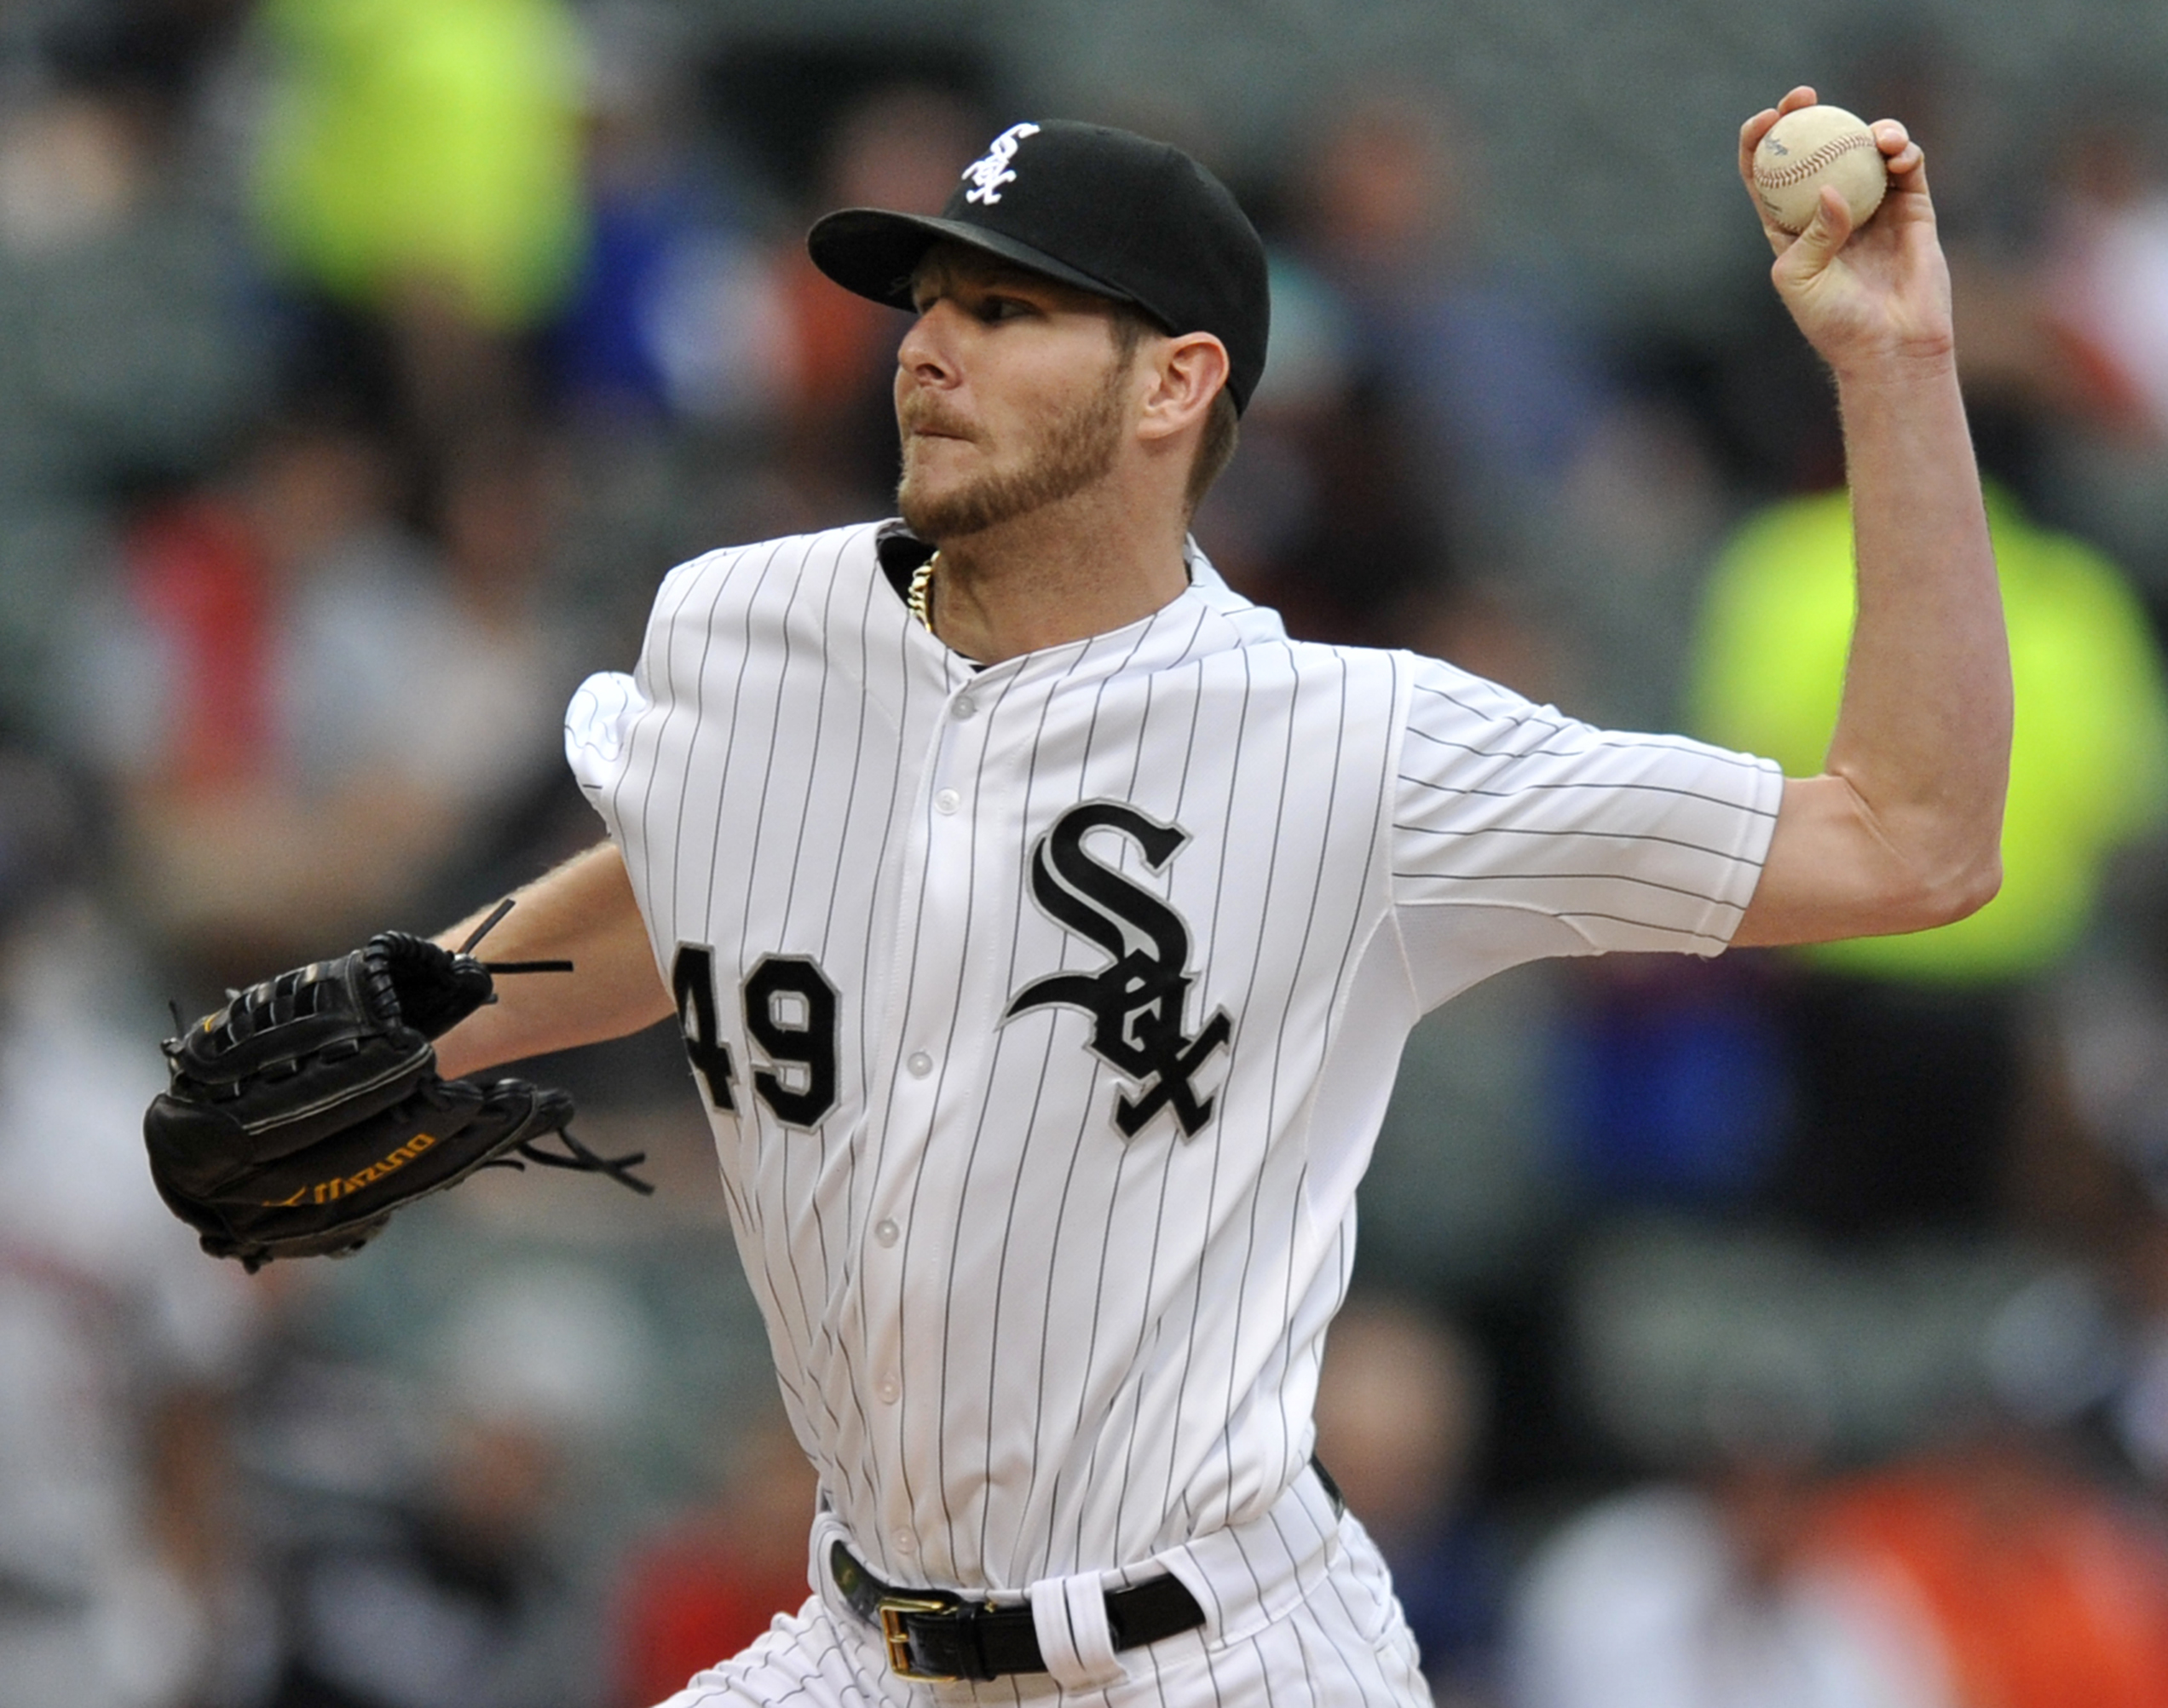 Chicago White Sox starter Chris Sale delivers a pitch during the first inning of a baseball game against the Houston Astros, Monday, June 8, 2015 in Chicago. (AP Photo/Paul Beaty)